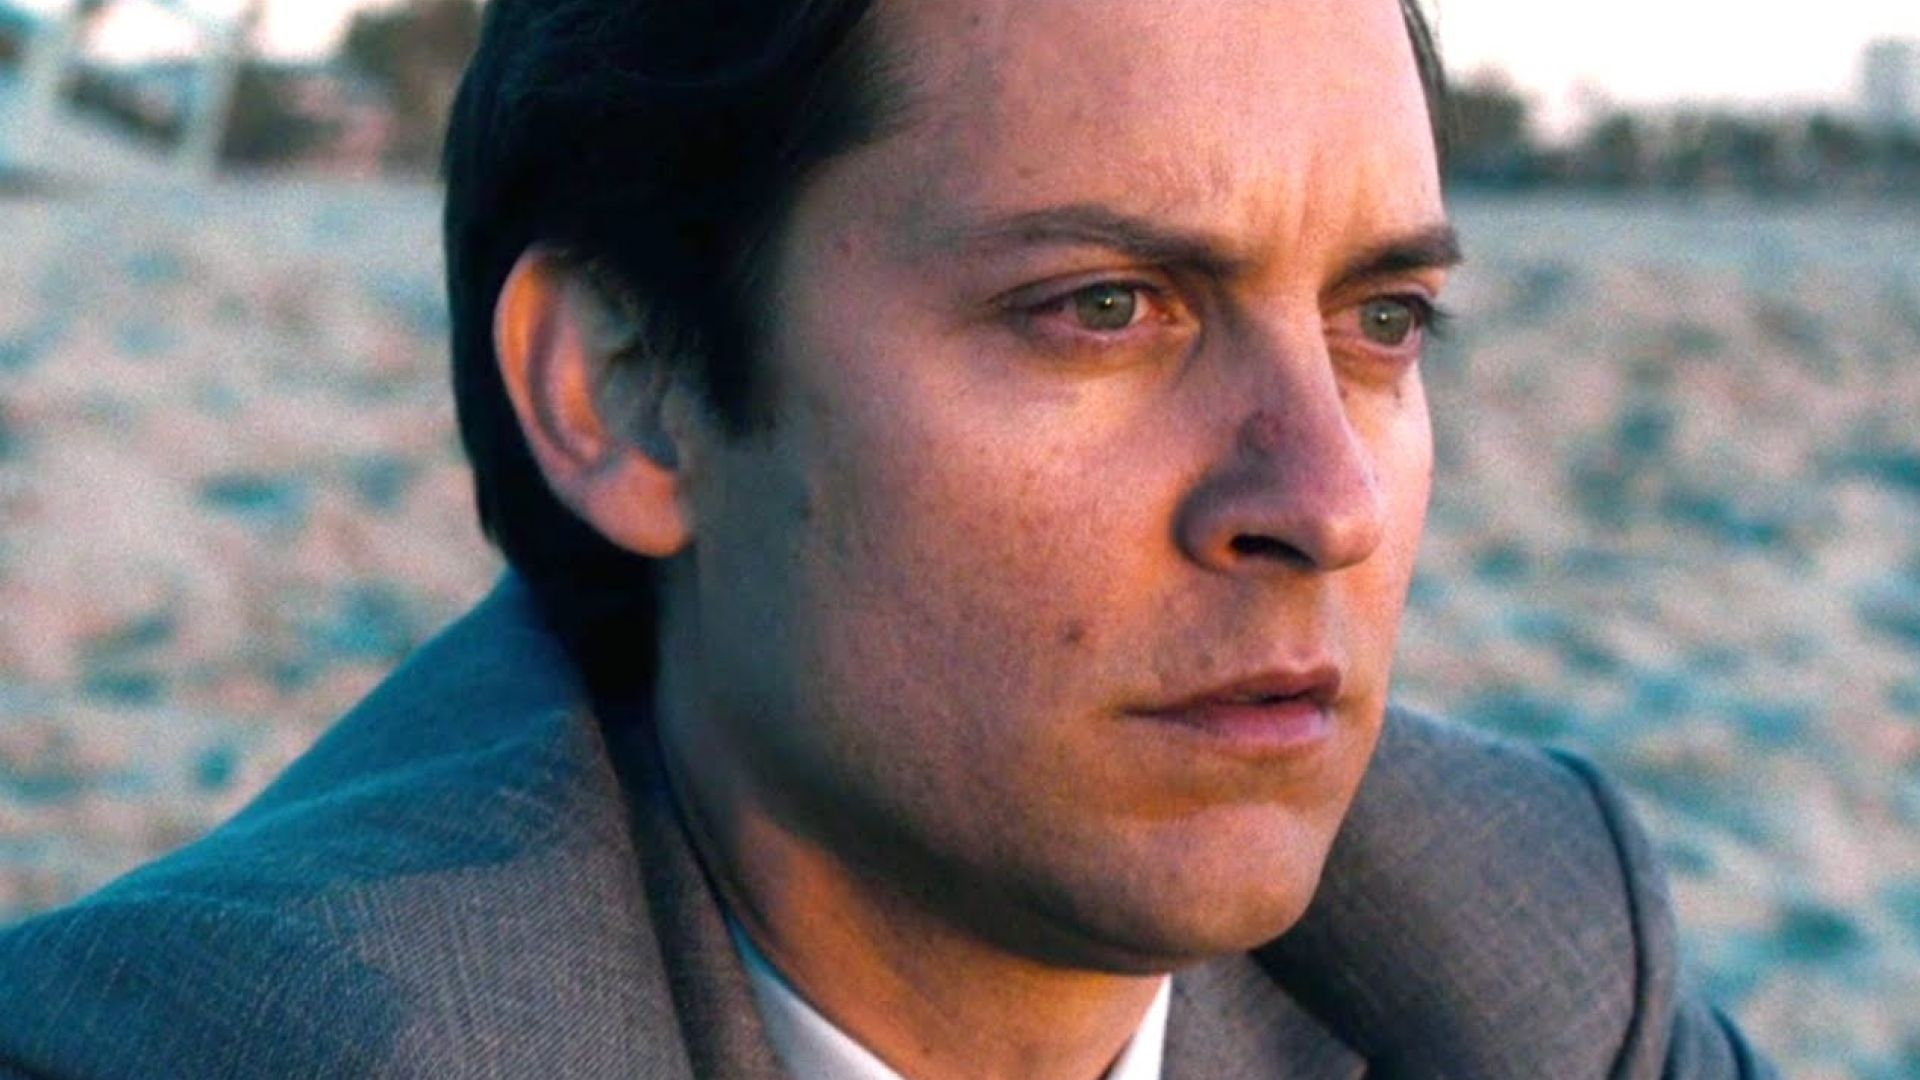 Tobey Maguire slowly goes insane in Cold War drama Pawn Sacrifice